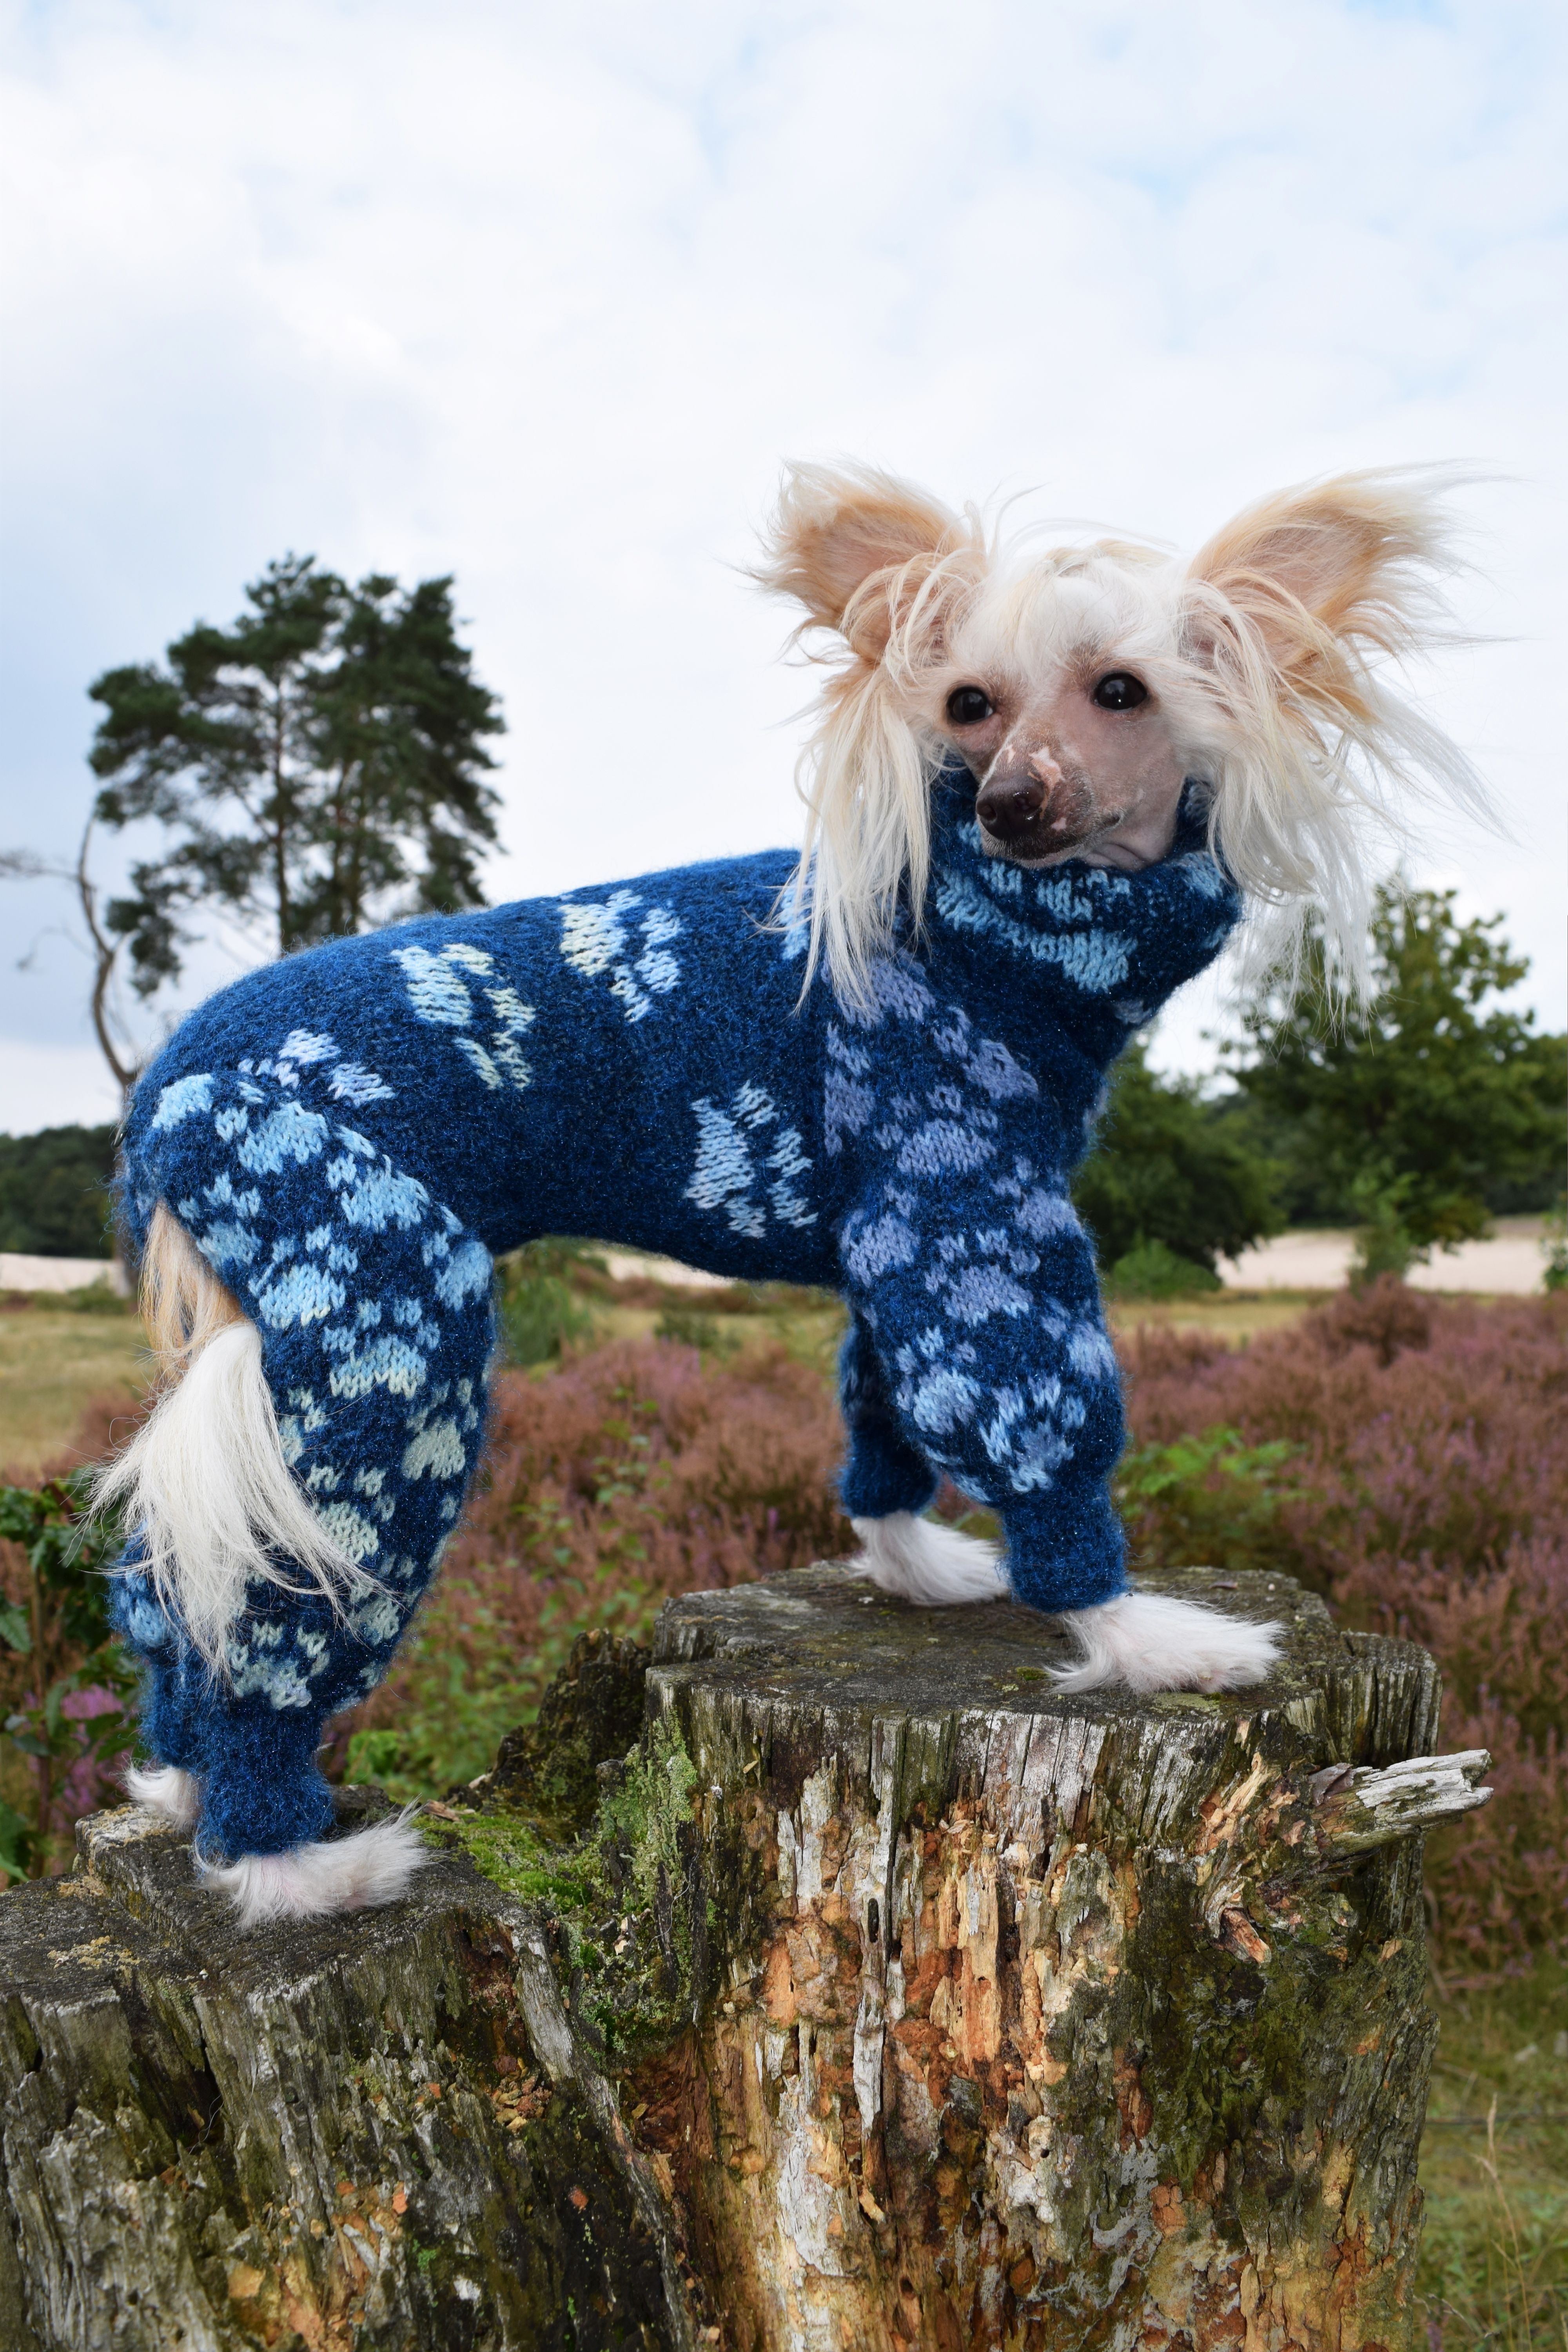 Paws 'n Bones in alpaca dazzle. *A* Chinese crested dog